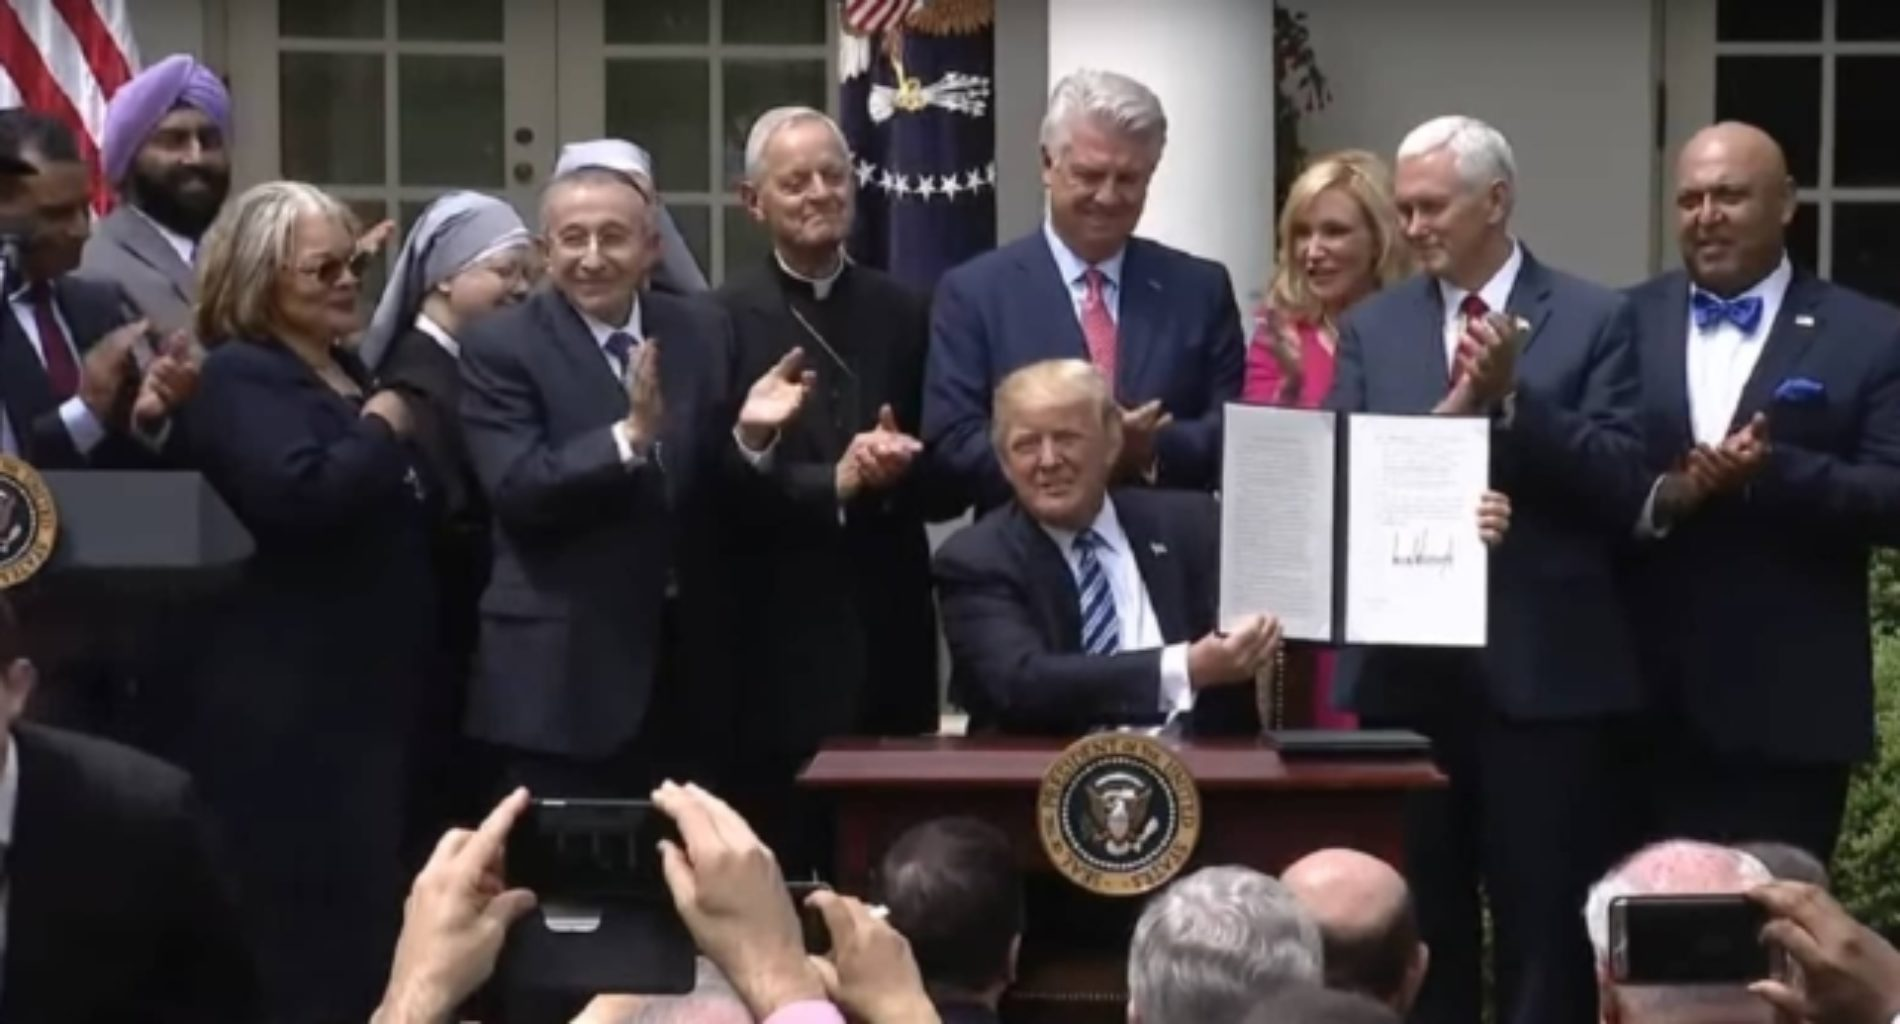 Donald Trump Signs 'Religious Liberty' Executive Order Allowing for Broad Exemptions